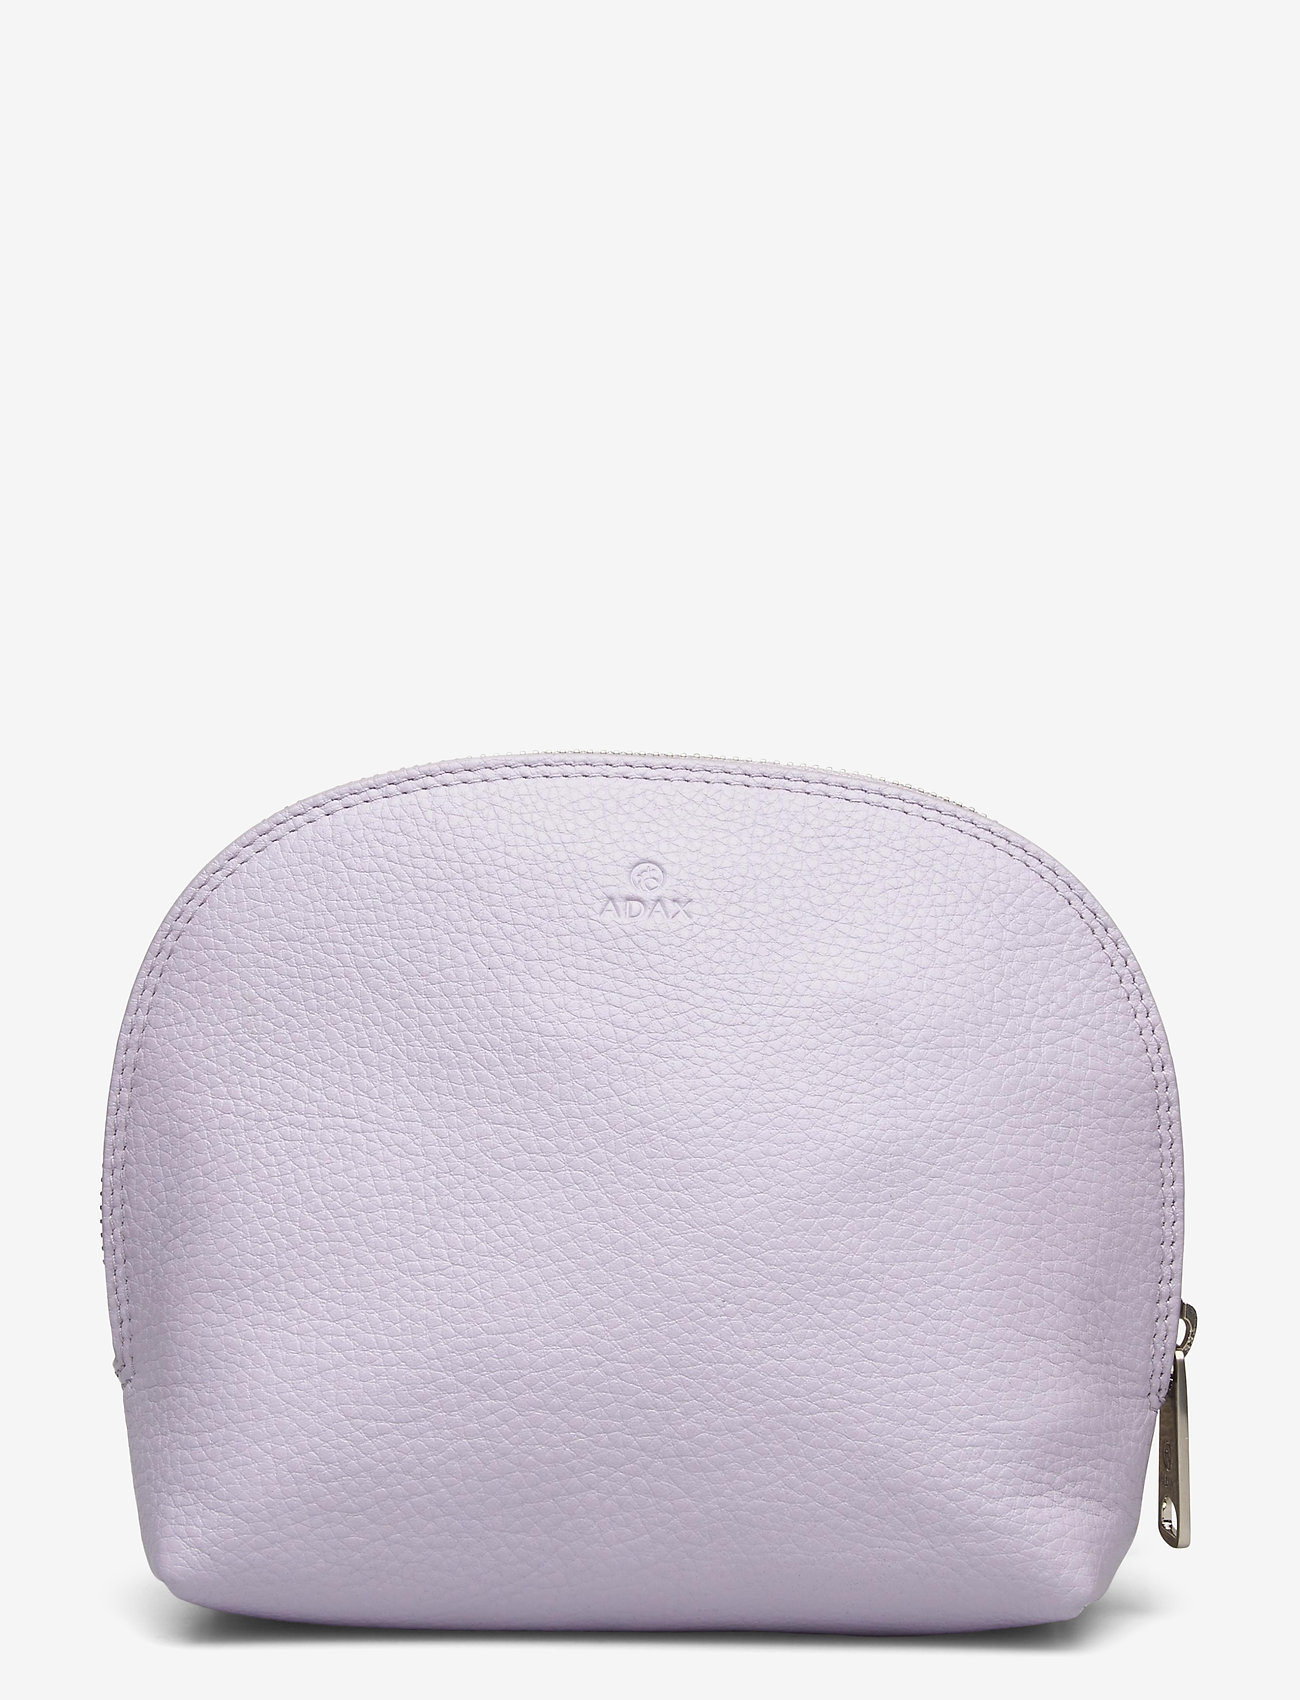 Adax - Cormorano cosmetic purse Lova - toilettassen - light purple - 0